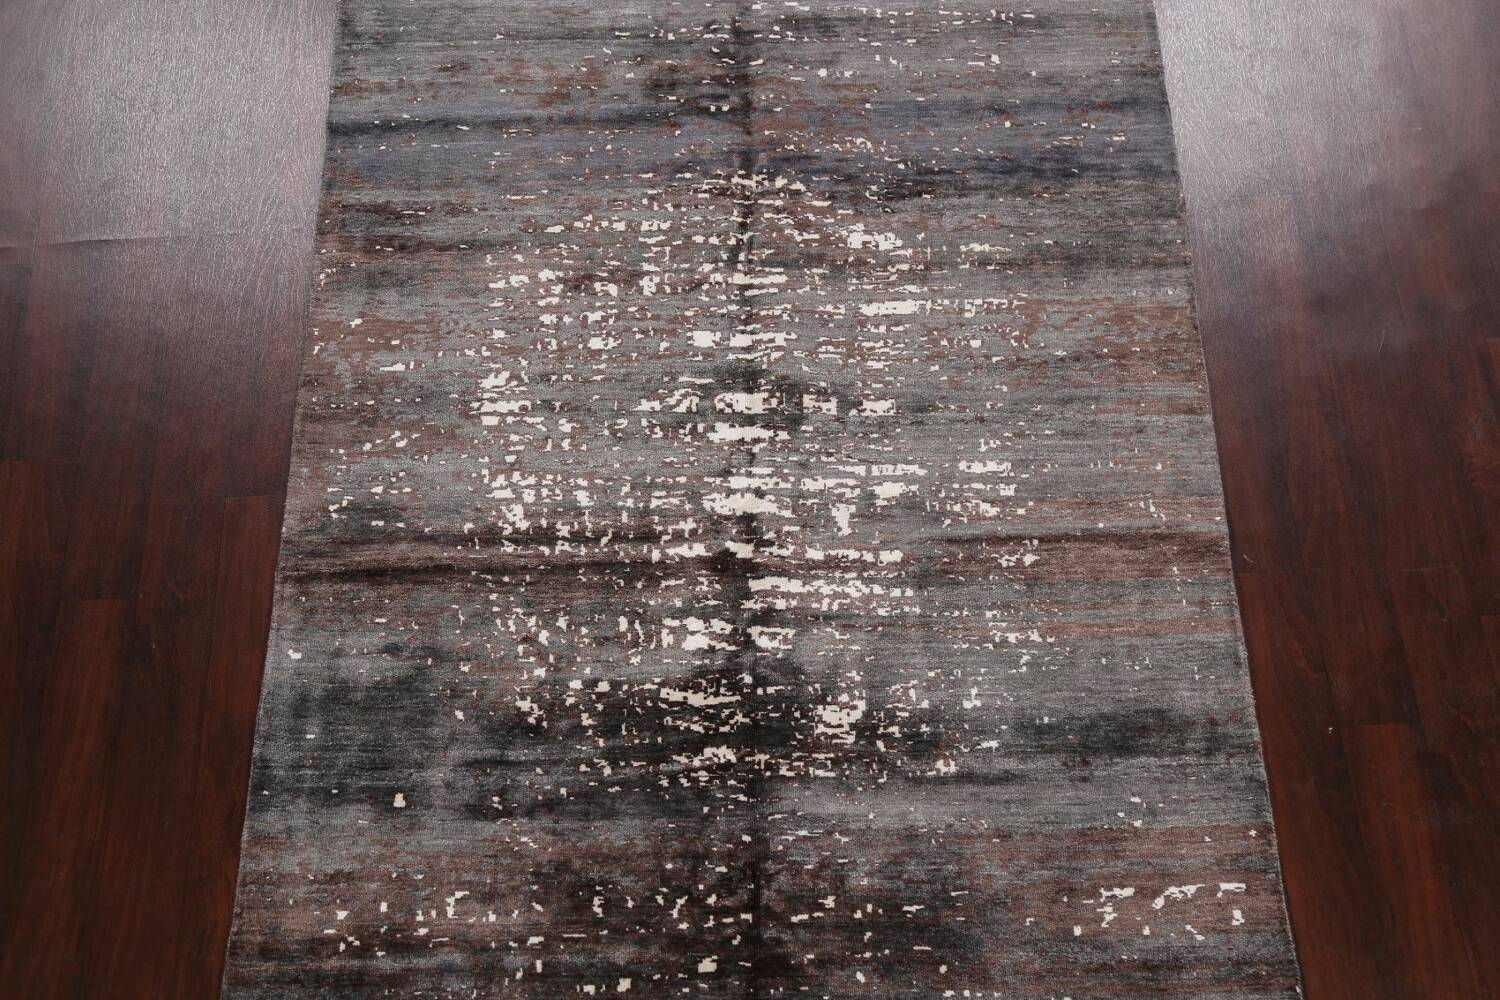 Artistic Contemporary Abstract Oriental Area Rug 5x7 image 3